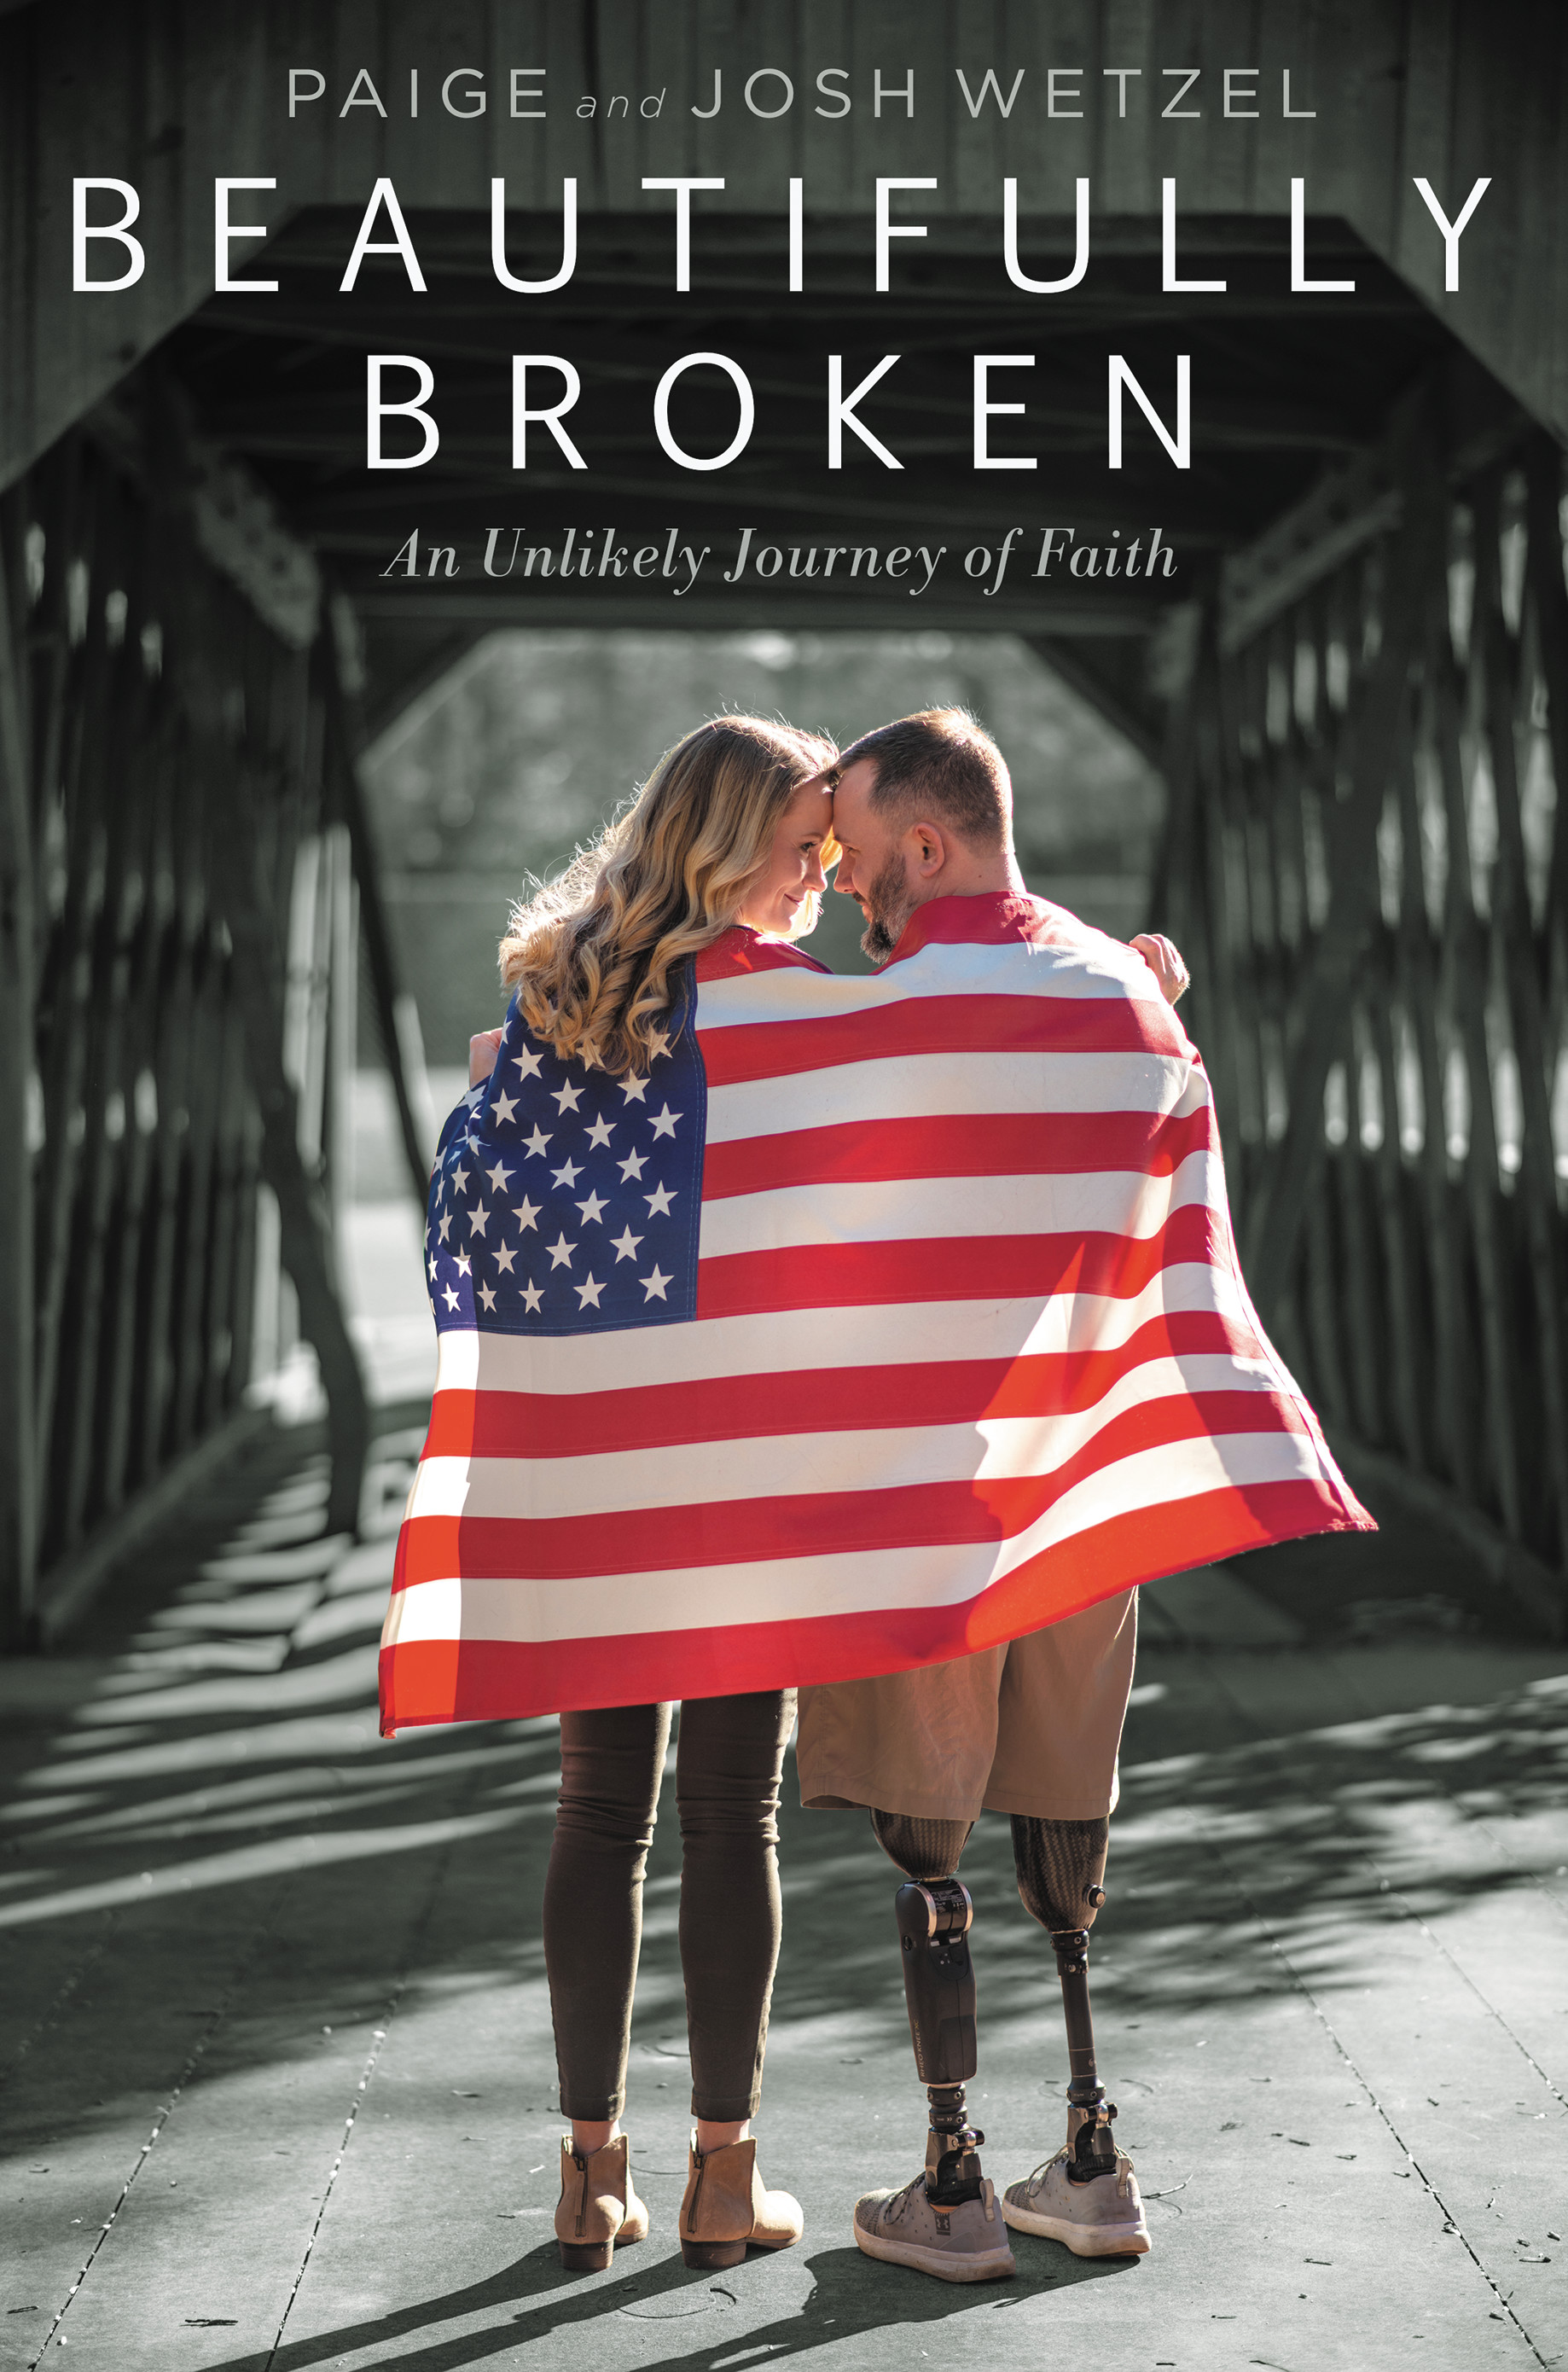 Beautifully Broken by Paige and Josh Wetzel